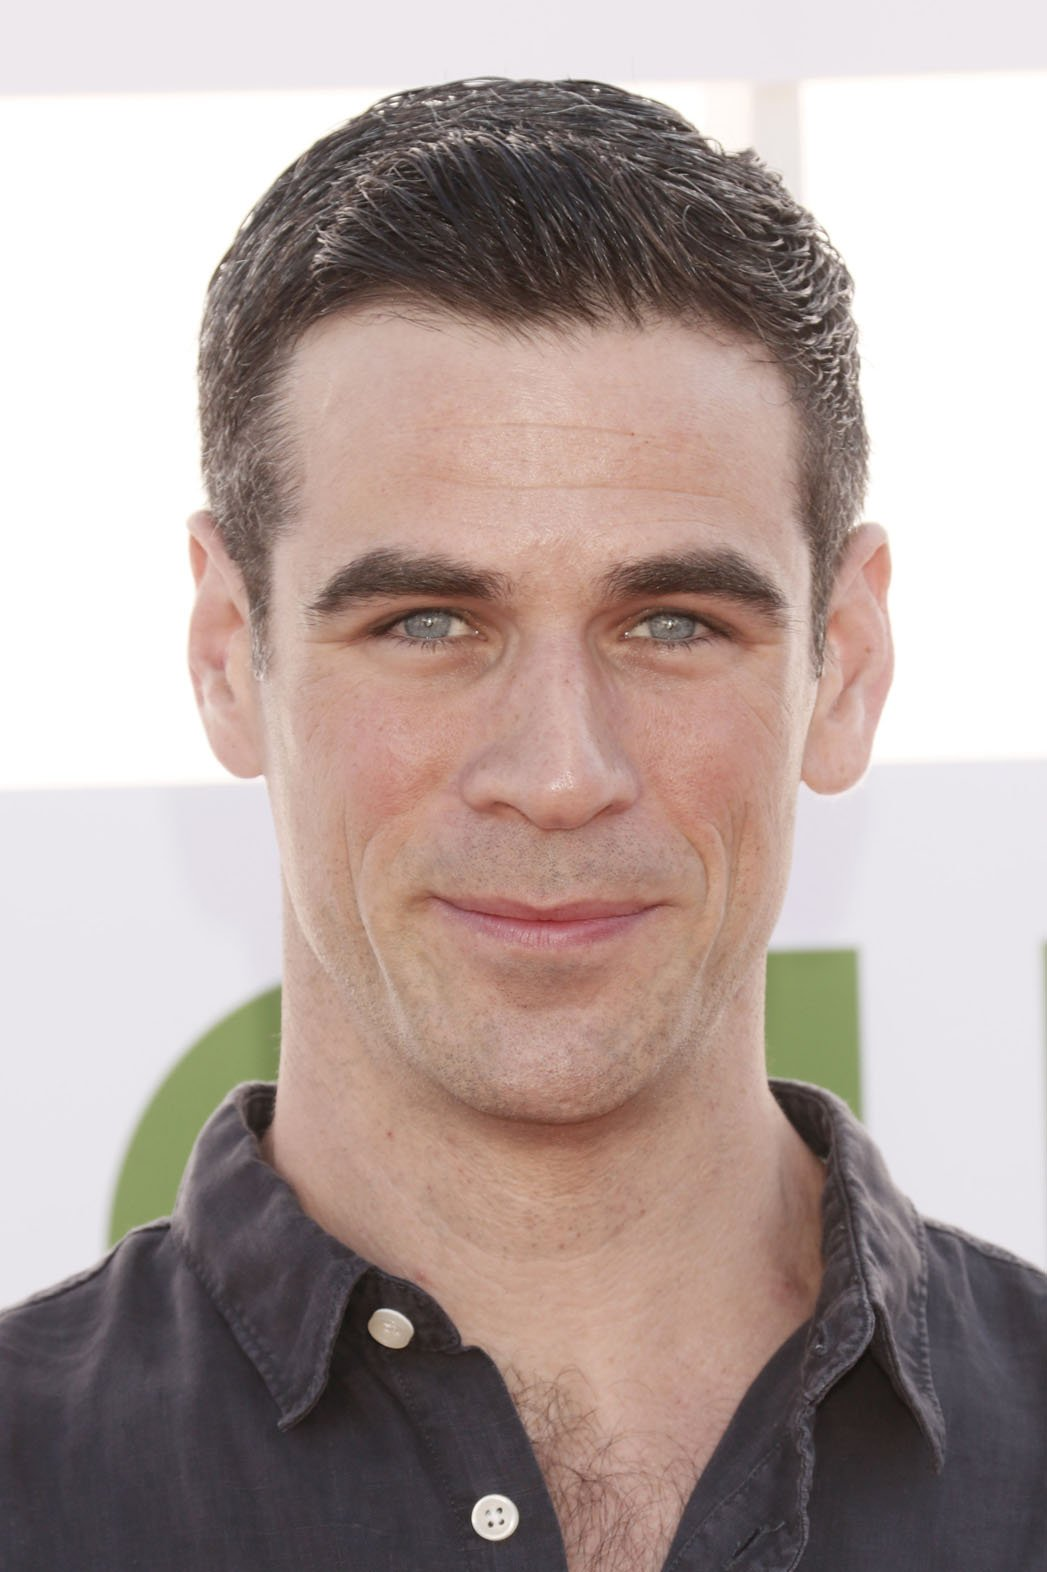 Eddie Cahill is going 'Under the Dome' in Wilmington, North Carolina for Season 2 of the hit CBS series.